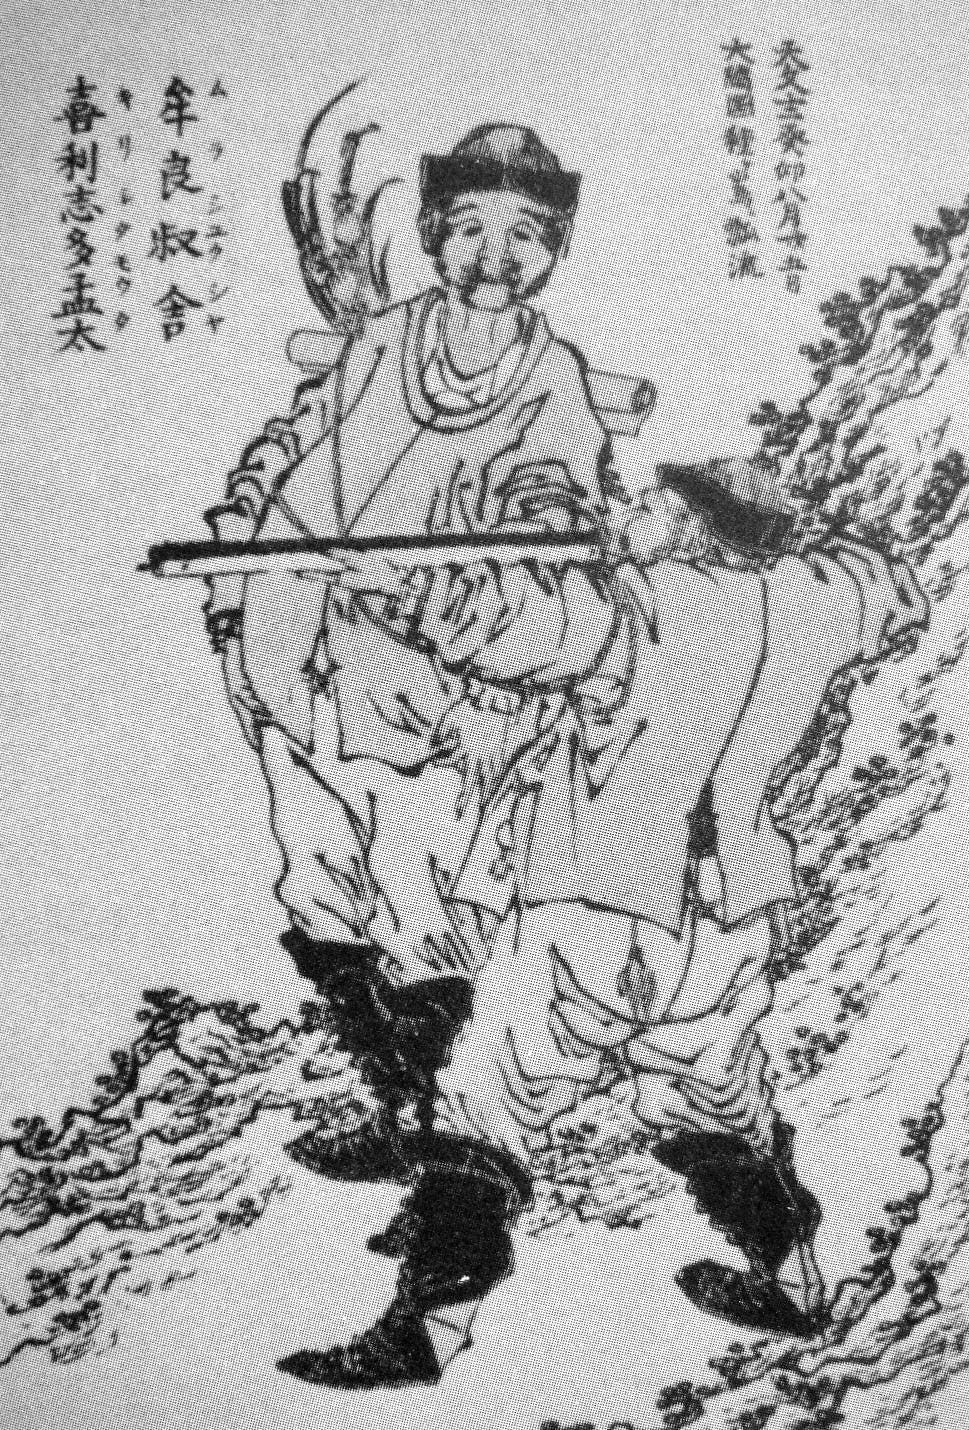 An imaginary picture of Antonio Motta teaching a Japanese how to use a rifle